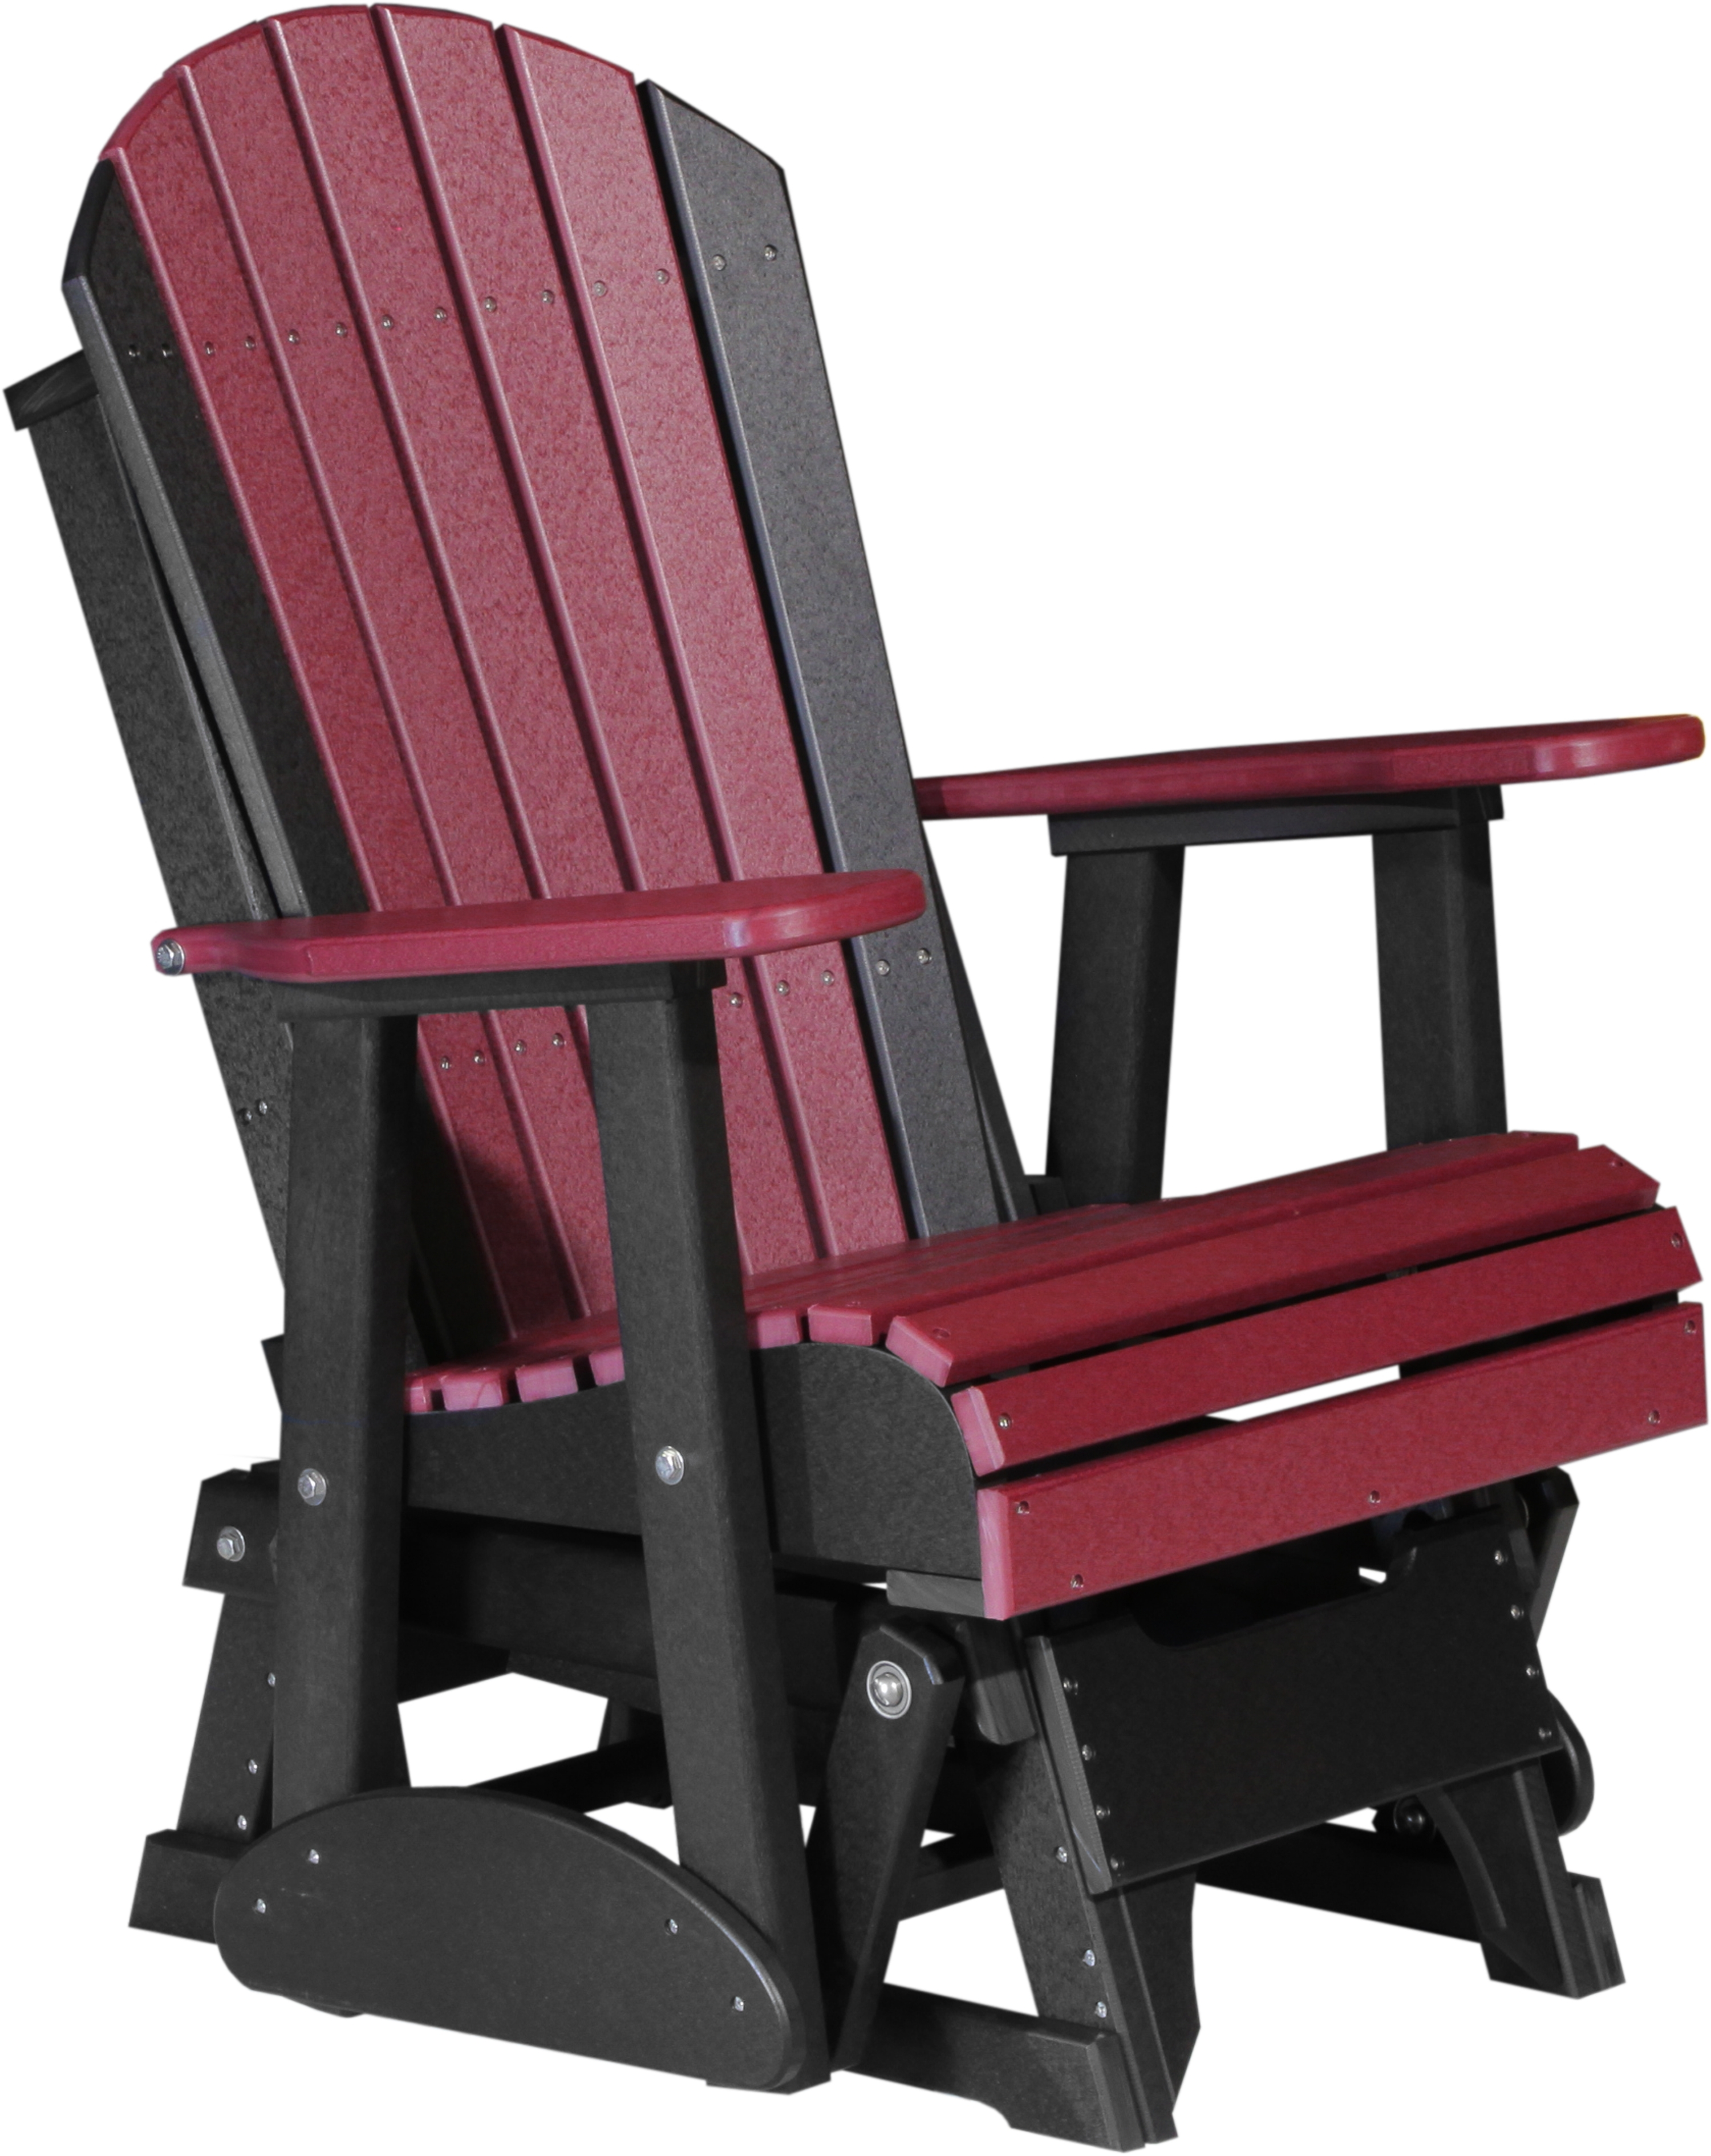 Most Popular Patio Rocking Chairs And Gliders Regarding Outdoor Furniture (View 5 of 15)